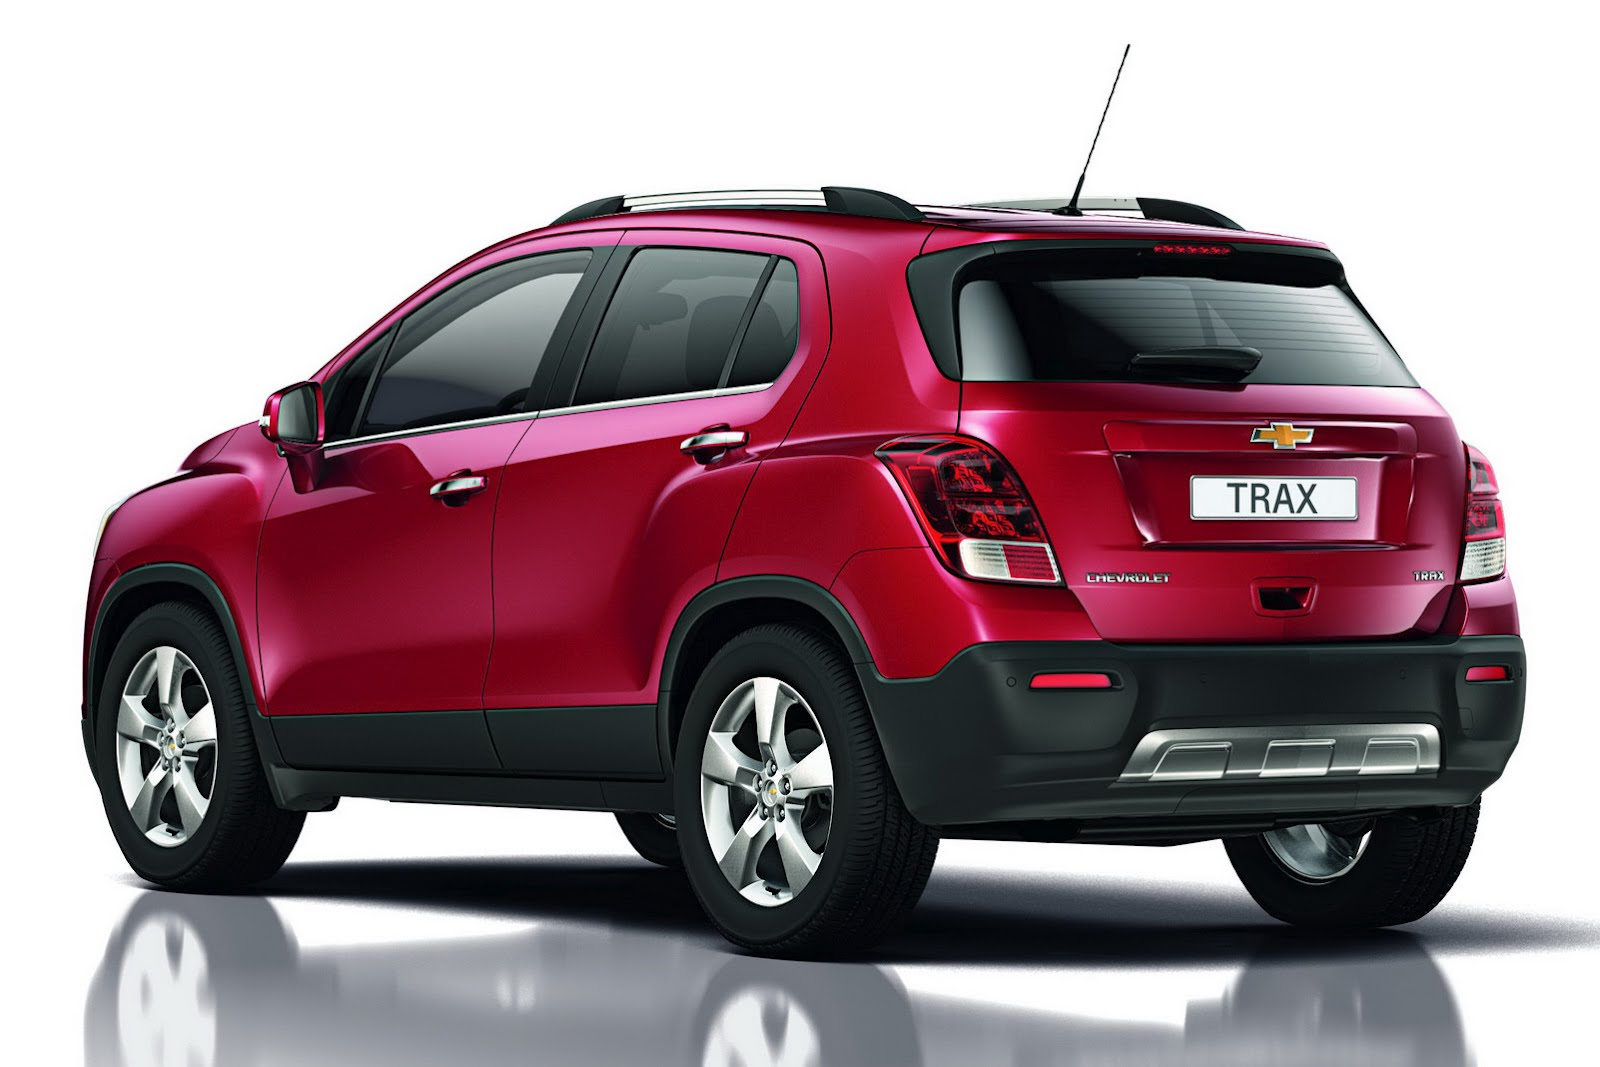 Chevrolet Tracker For Sale Chevrolet Trax - This Car was also displayed in Paris Motor Show ...